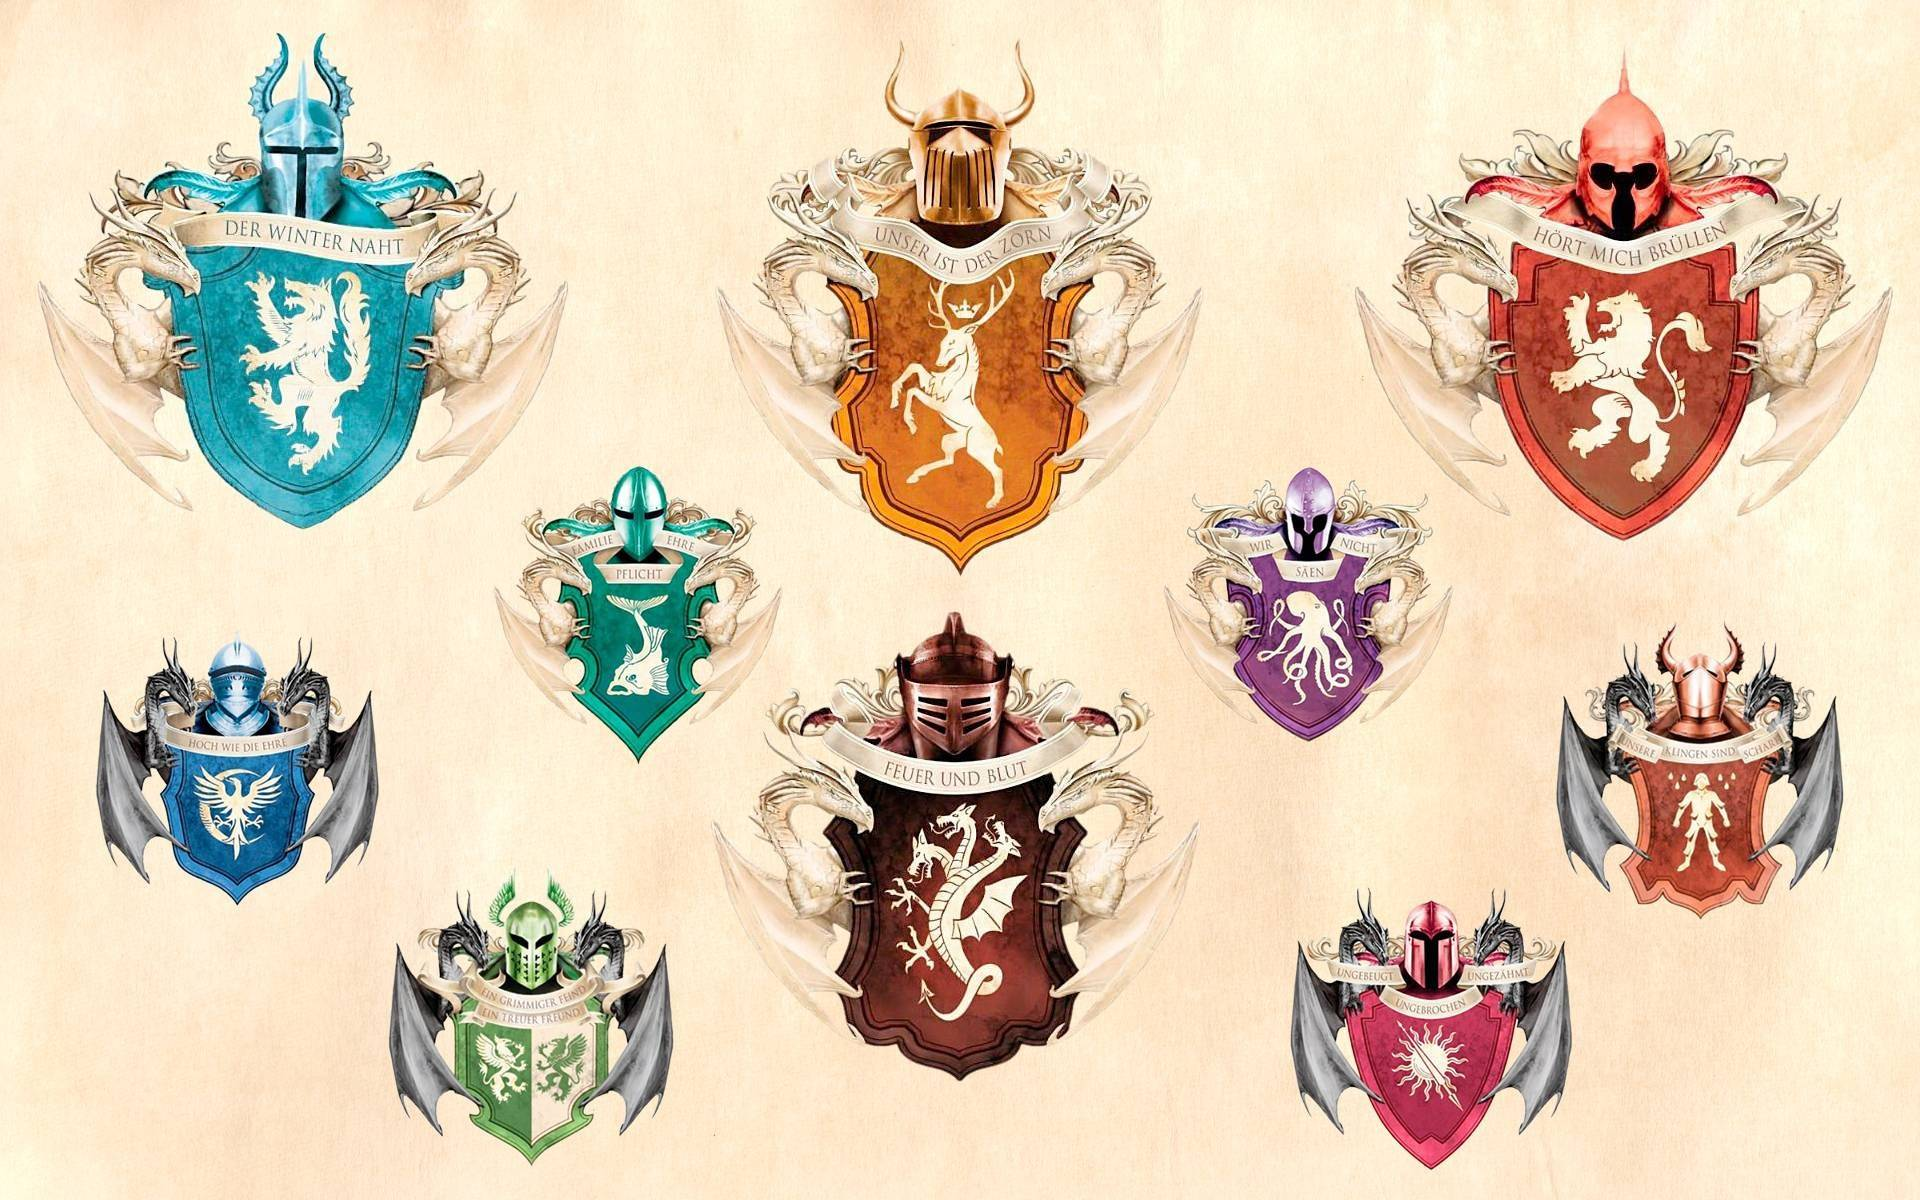 The Houses from A Song of Ice and Fire